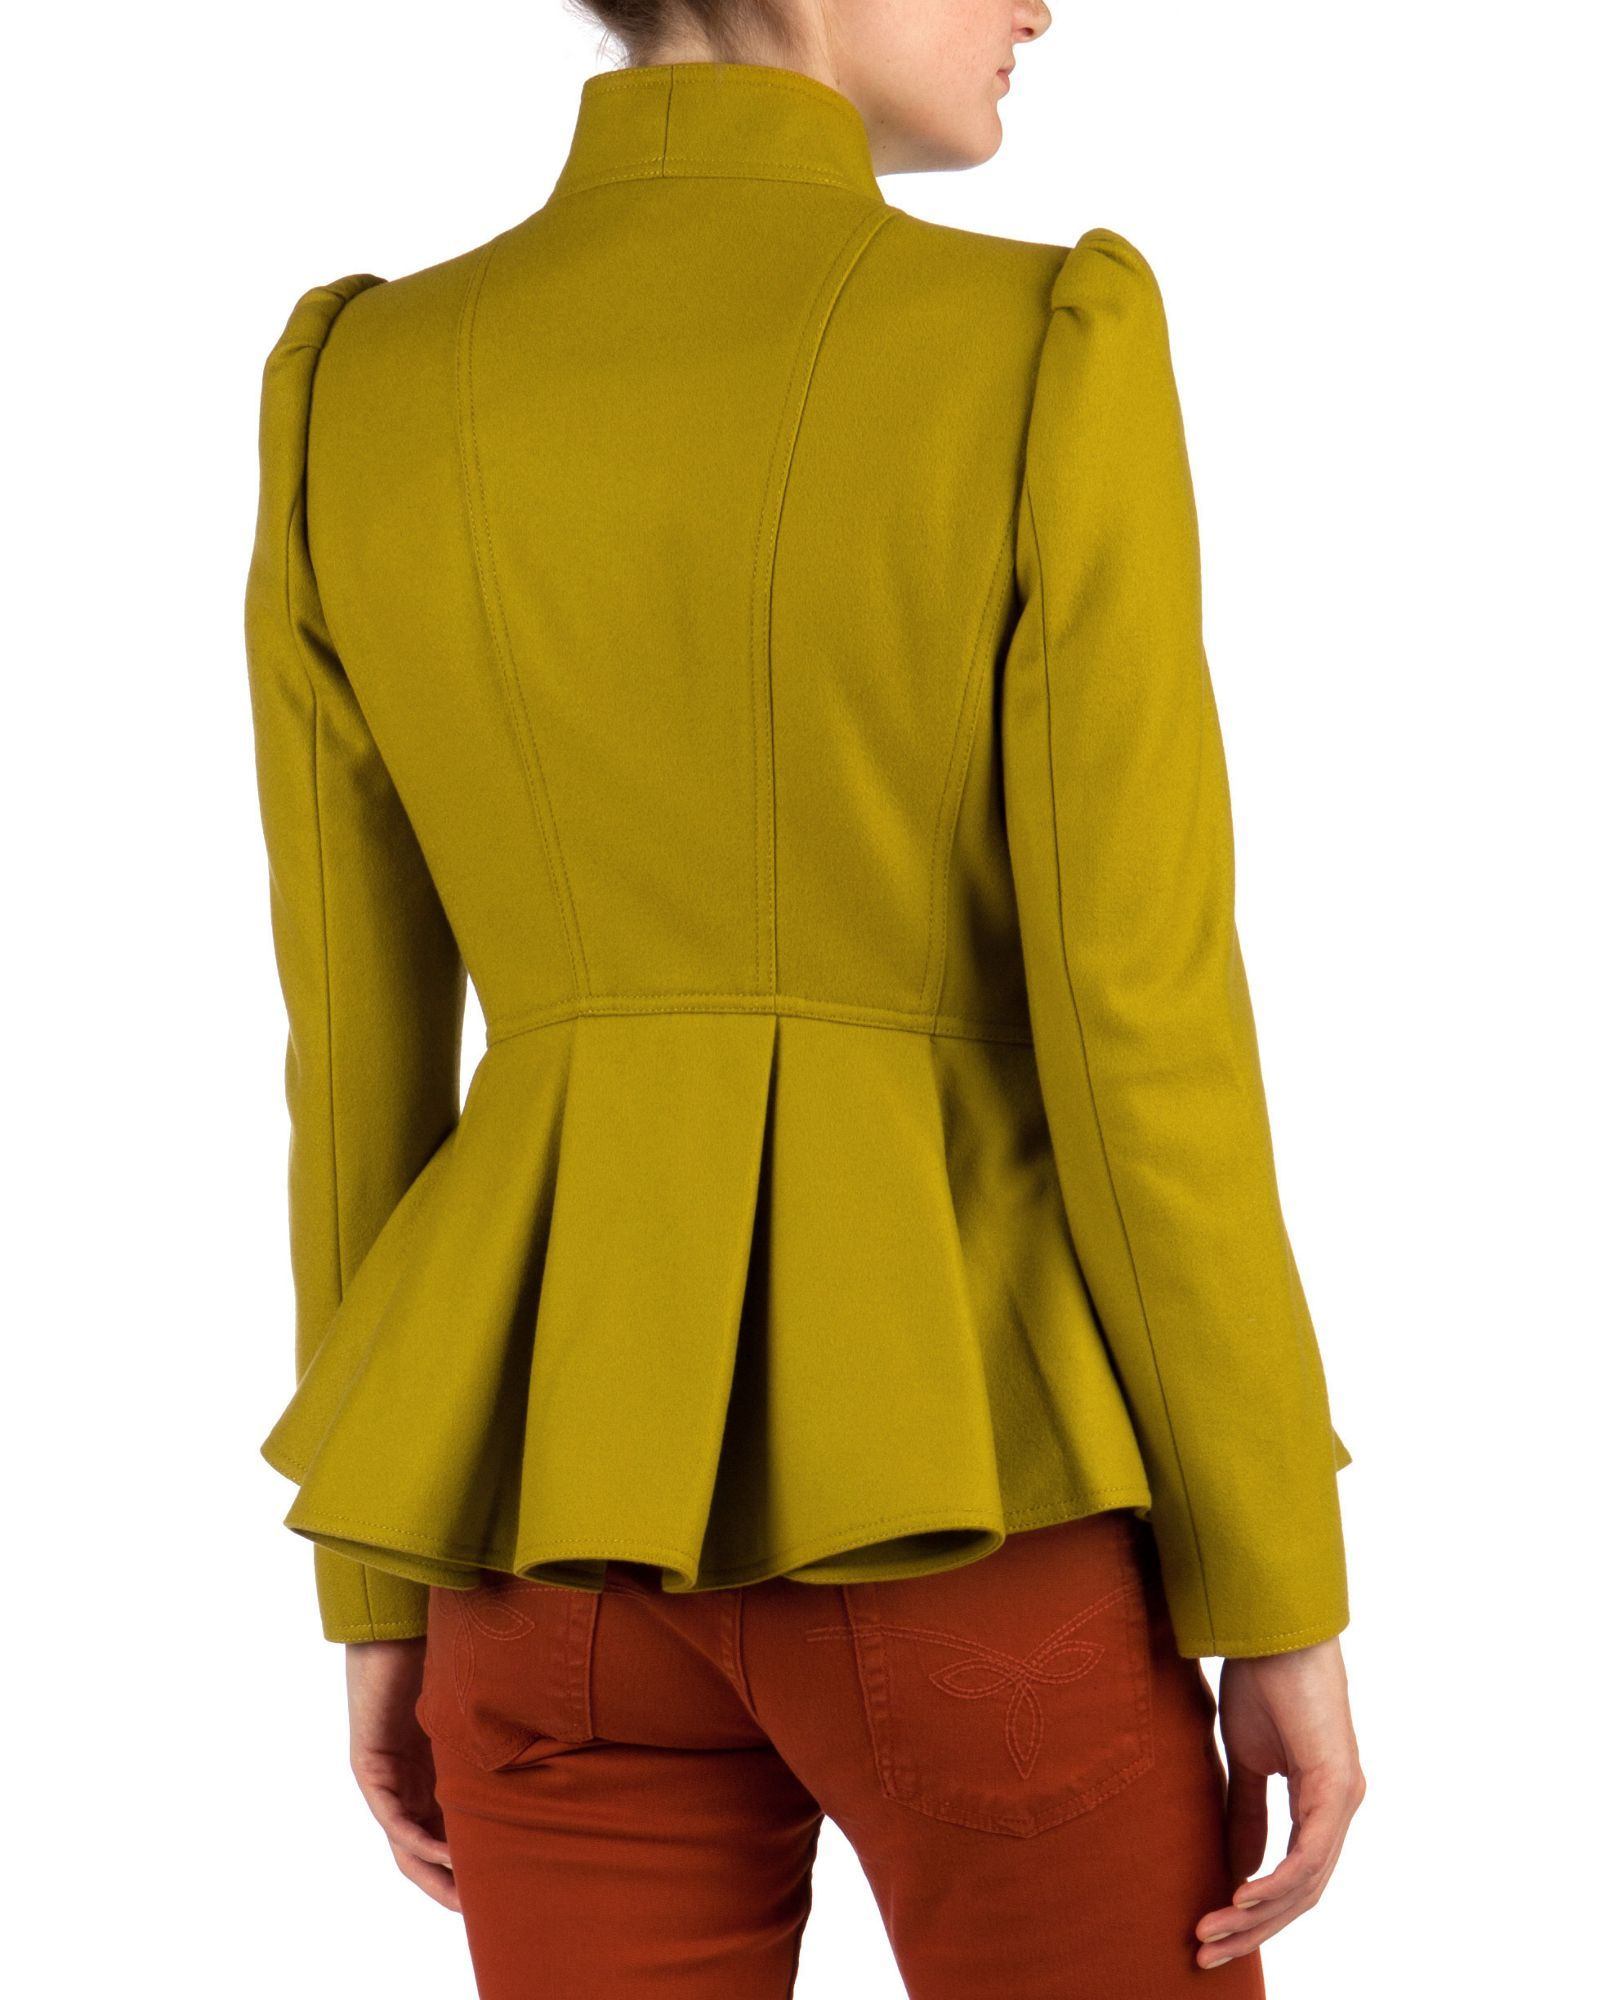 42d4bd22d Ted baker Wrenn Wool Peplum Jacket in Green